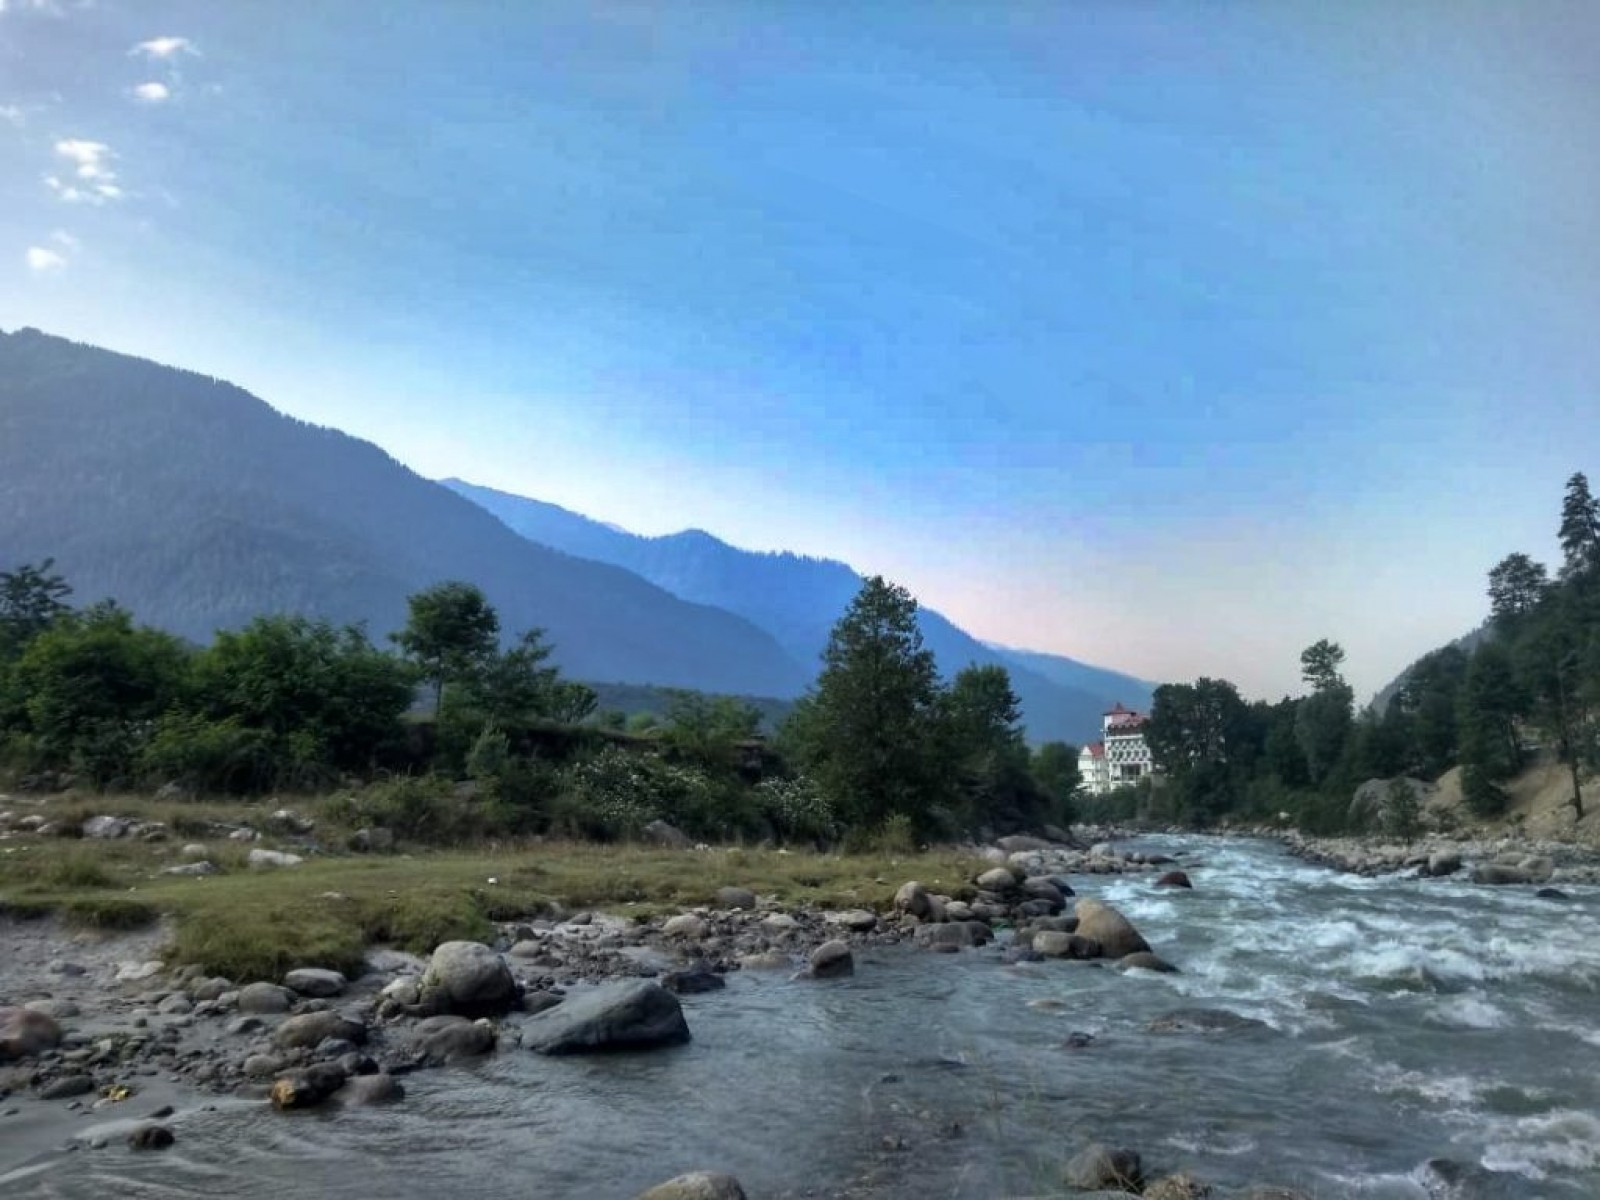 http://www.thegreatnext.com/Camping Manali Uttarakhand Beas River Adventure Travel The Great Next